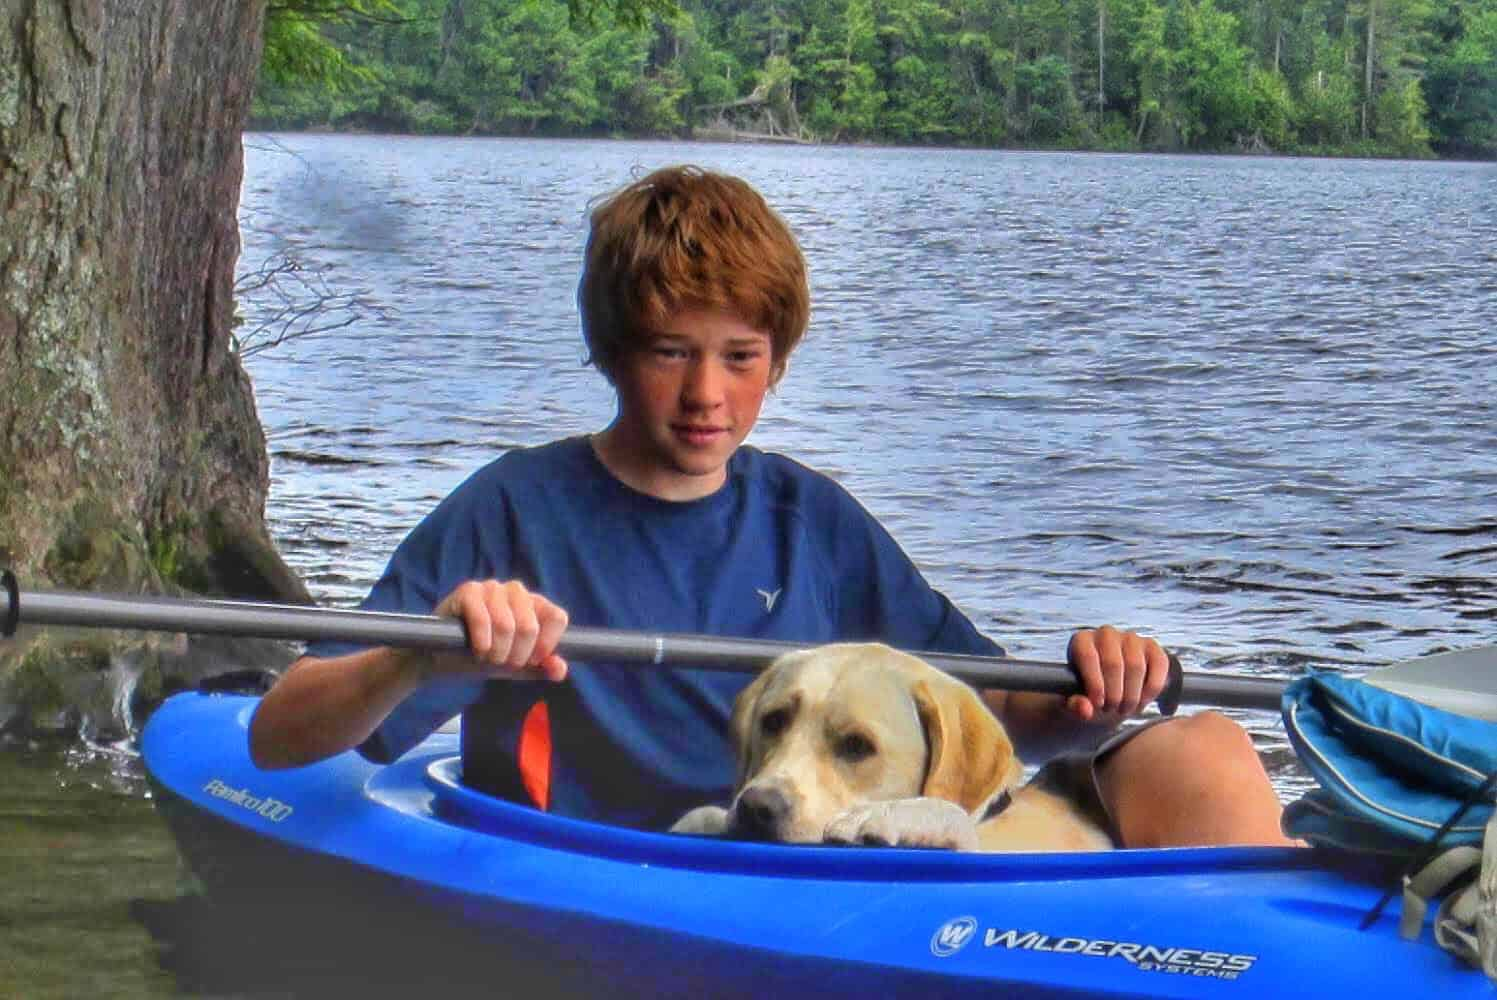 A boy and a dog in a blue kayak on a peaceful lake.